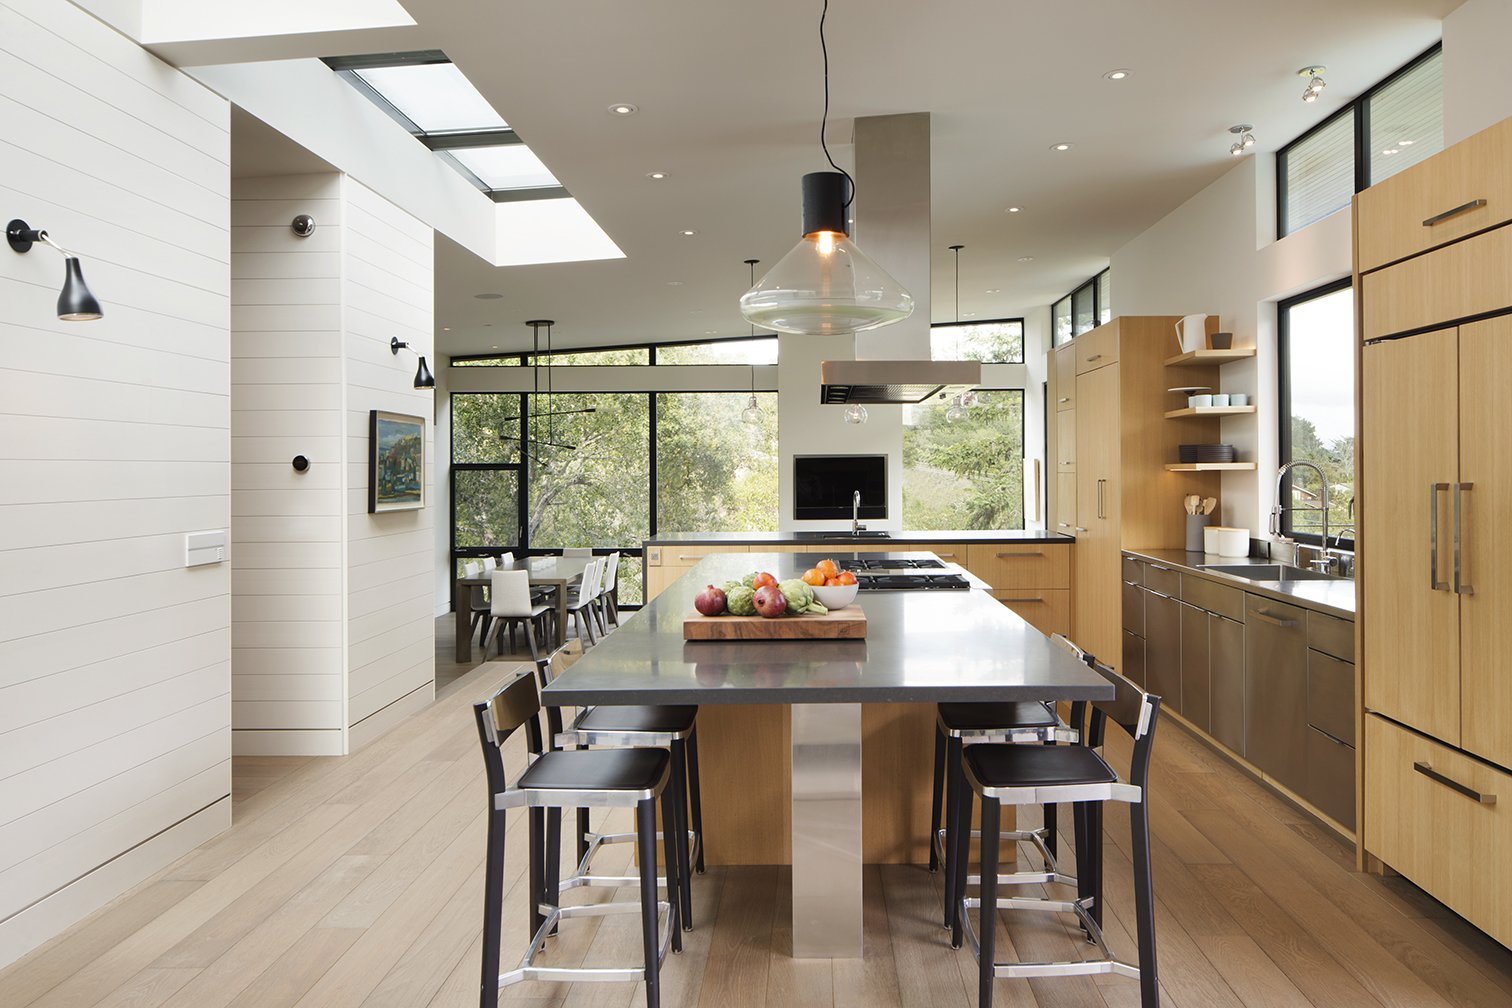 The home includes an eat-in kitchen as well as distinct, sunken dining area.  Photo 5 of 5 in A New Spin on the Suburbs in Marin